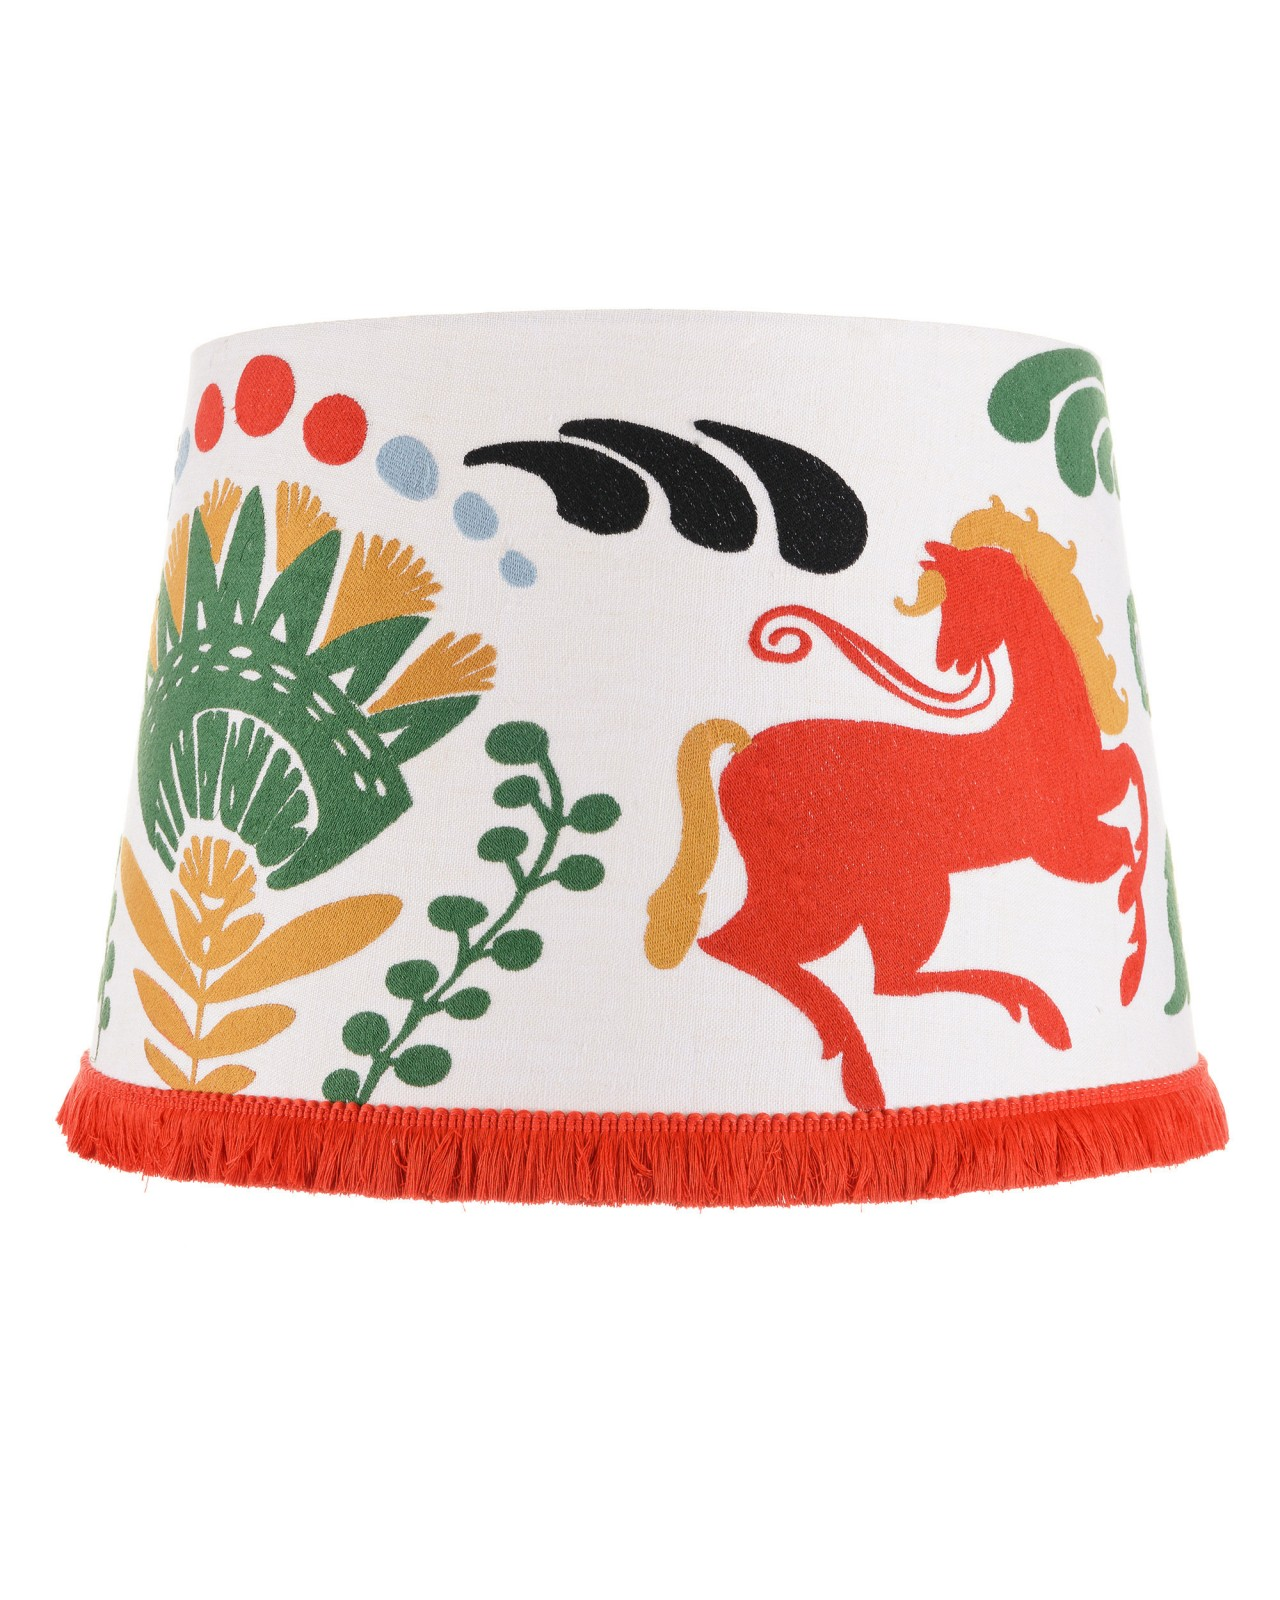 HORSE PARADE Embroidered Lampshade